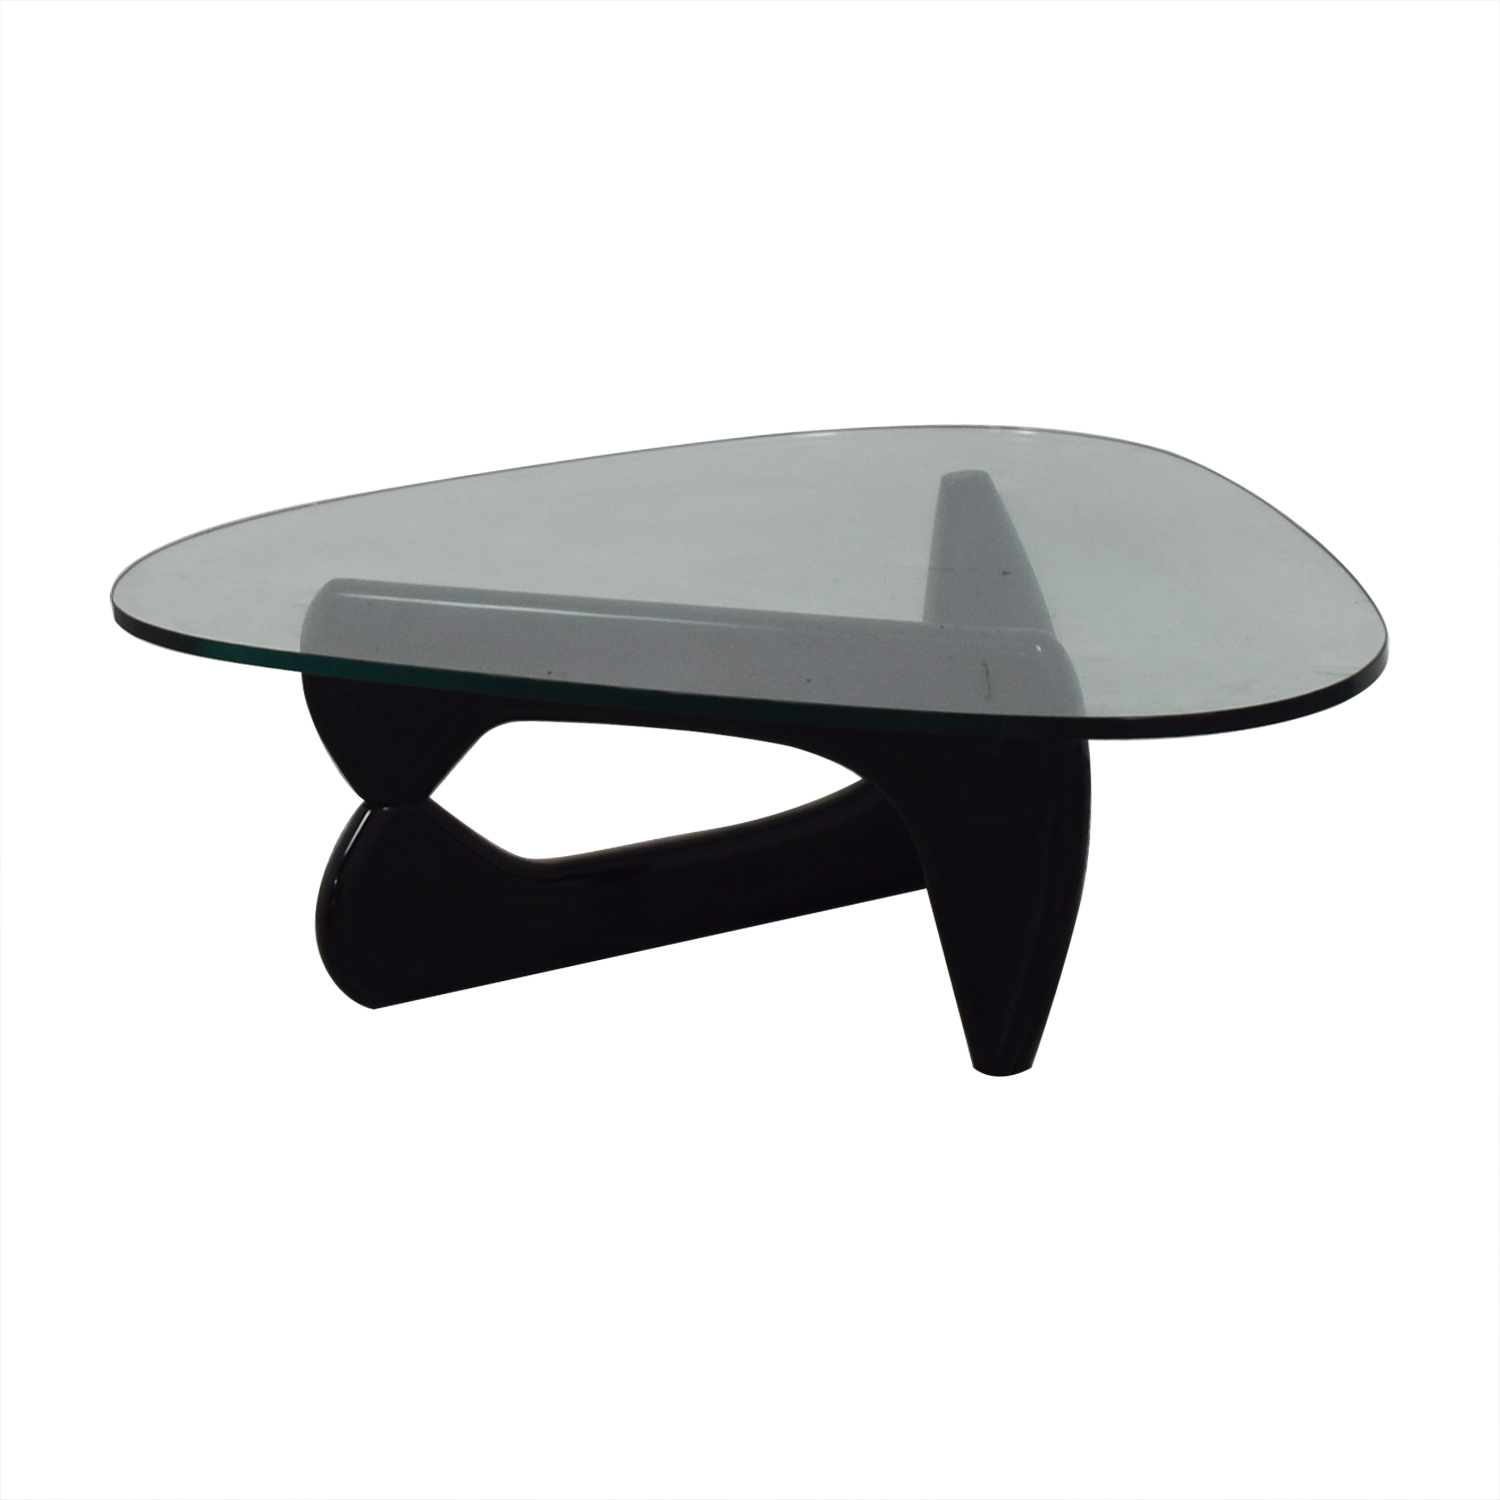 Maurice Villency Maurice Villency Noguchi Style Glass with Black Lacquer Coffee Table nj